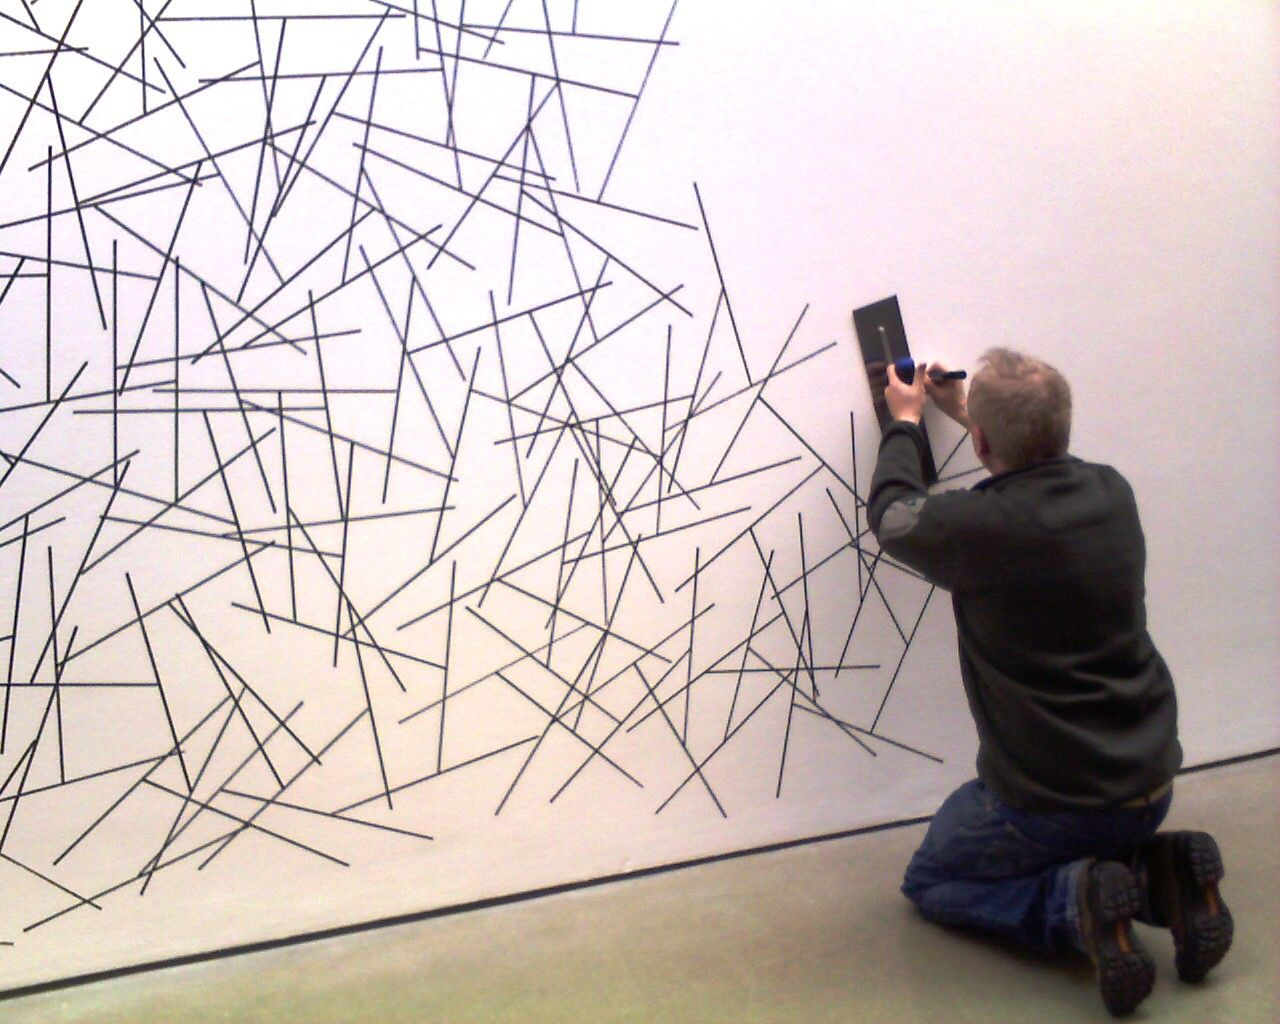 How To Draw Straight Line In Art Studio : Sol lewitt wall drawings dia foundation gallery beacon ny it